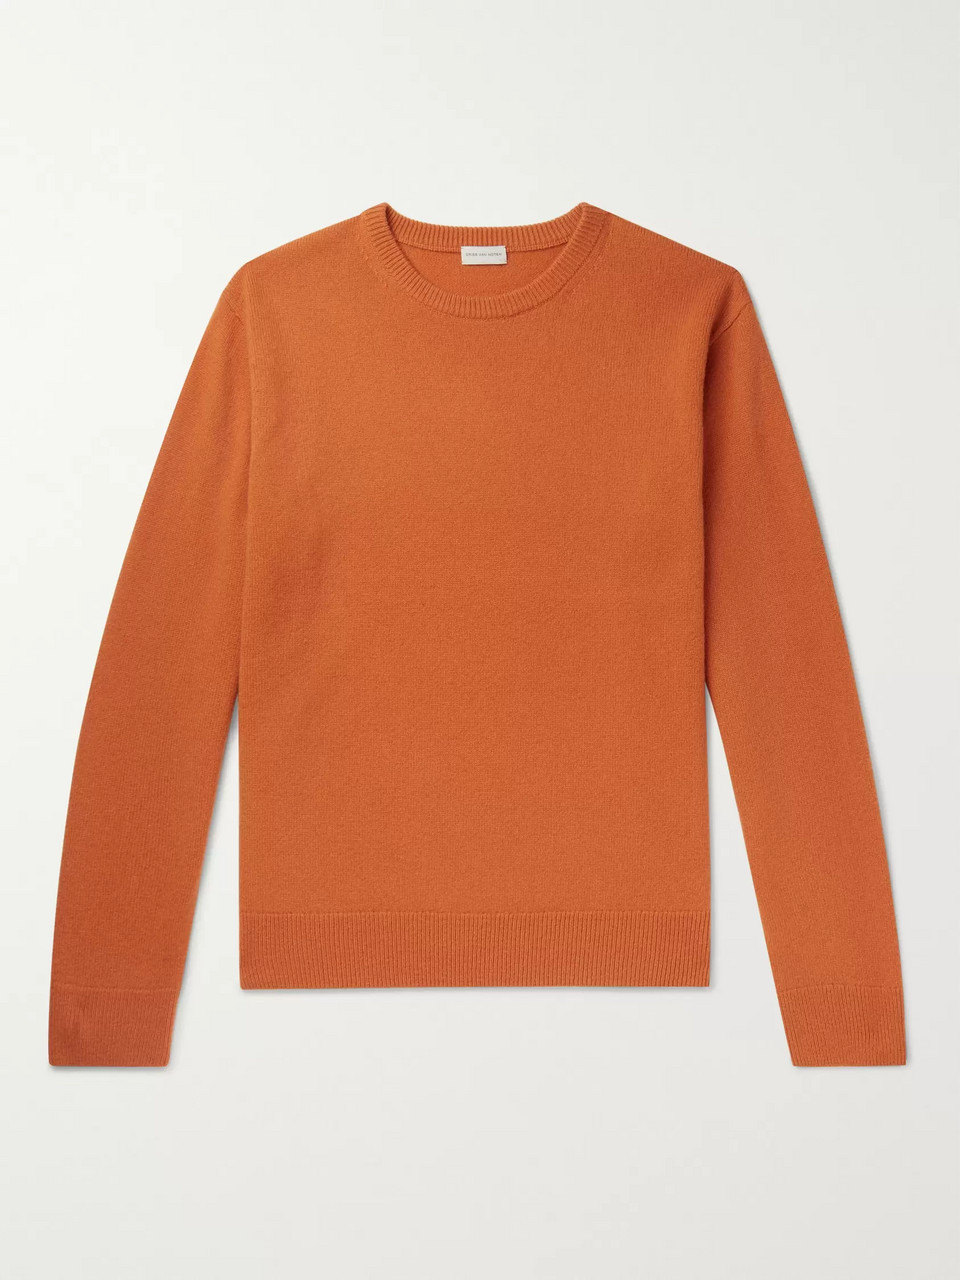 Dries Van Noten Oversized Merino Wool Sweater